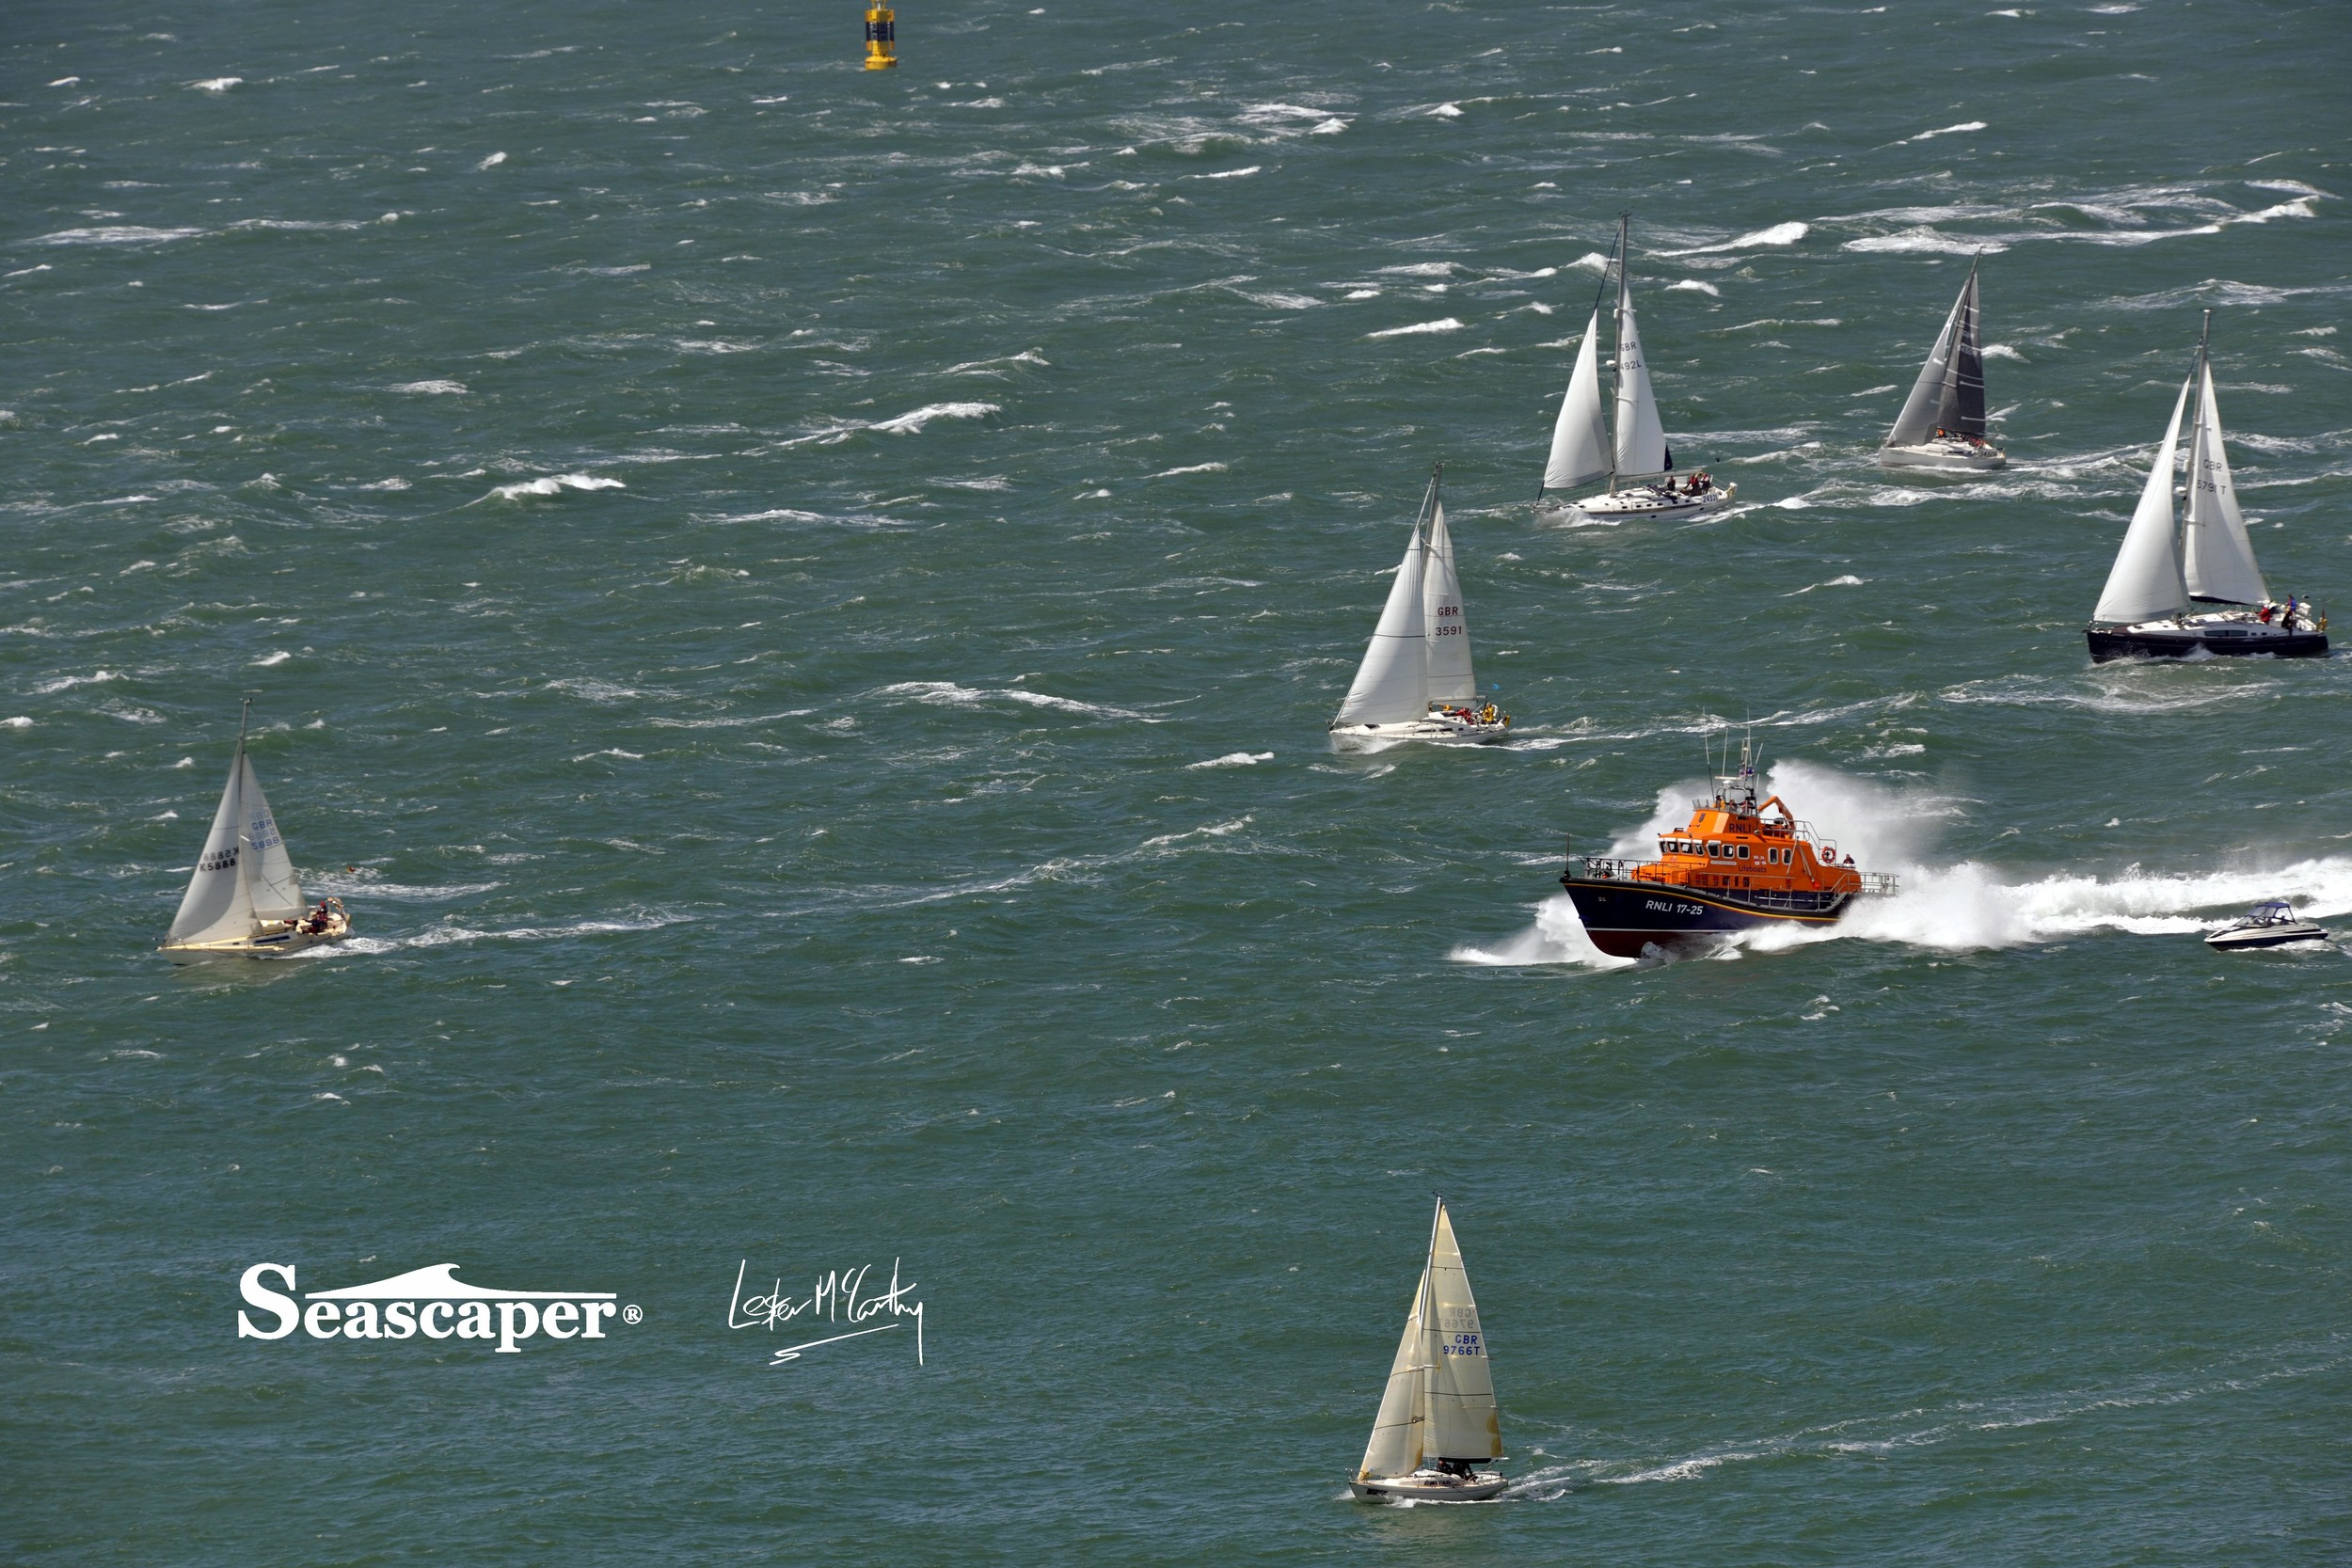 The RNLI Yarmouth lifeboat speeds through the fleet to get to the stricken vessel.